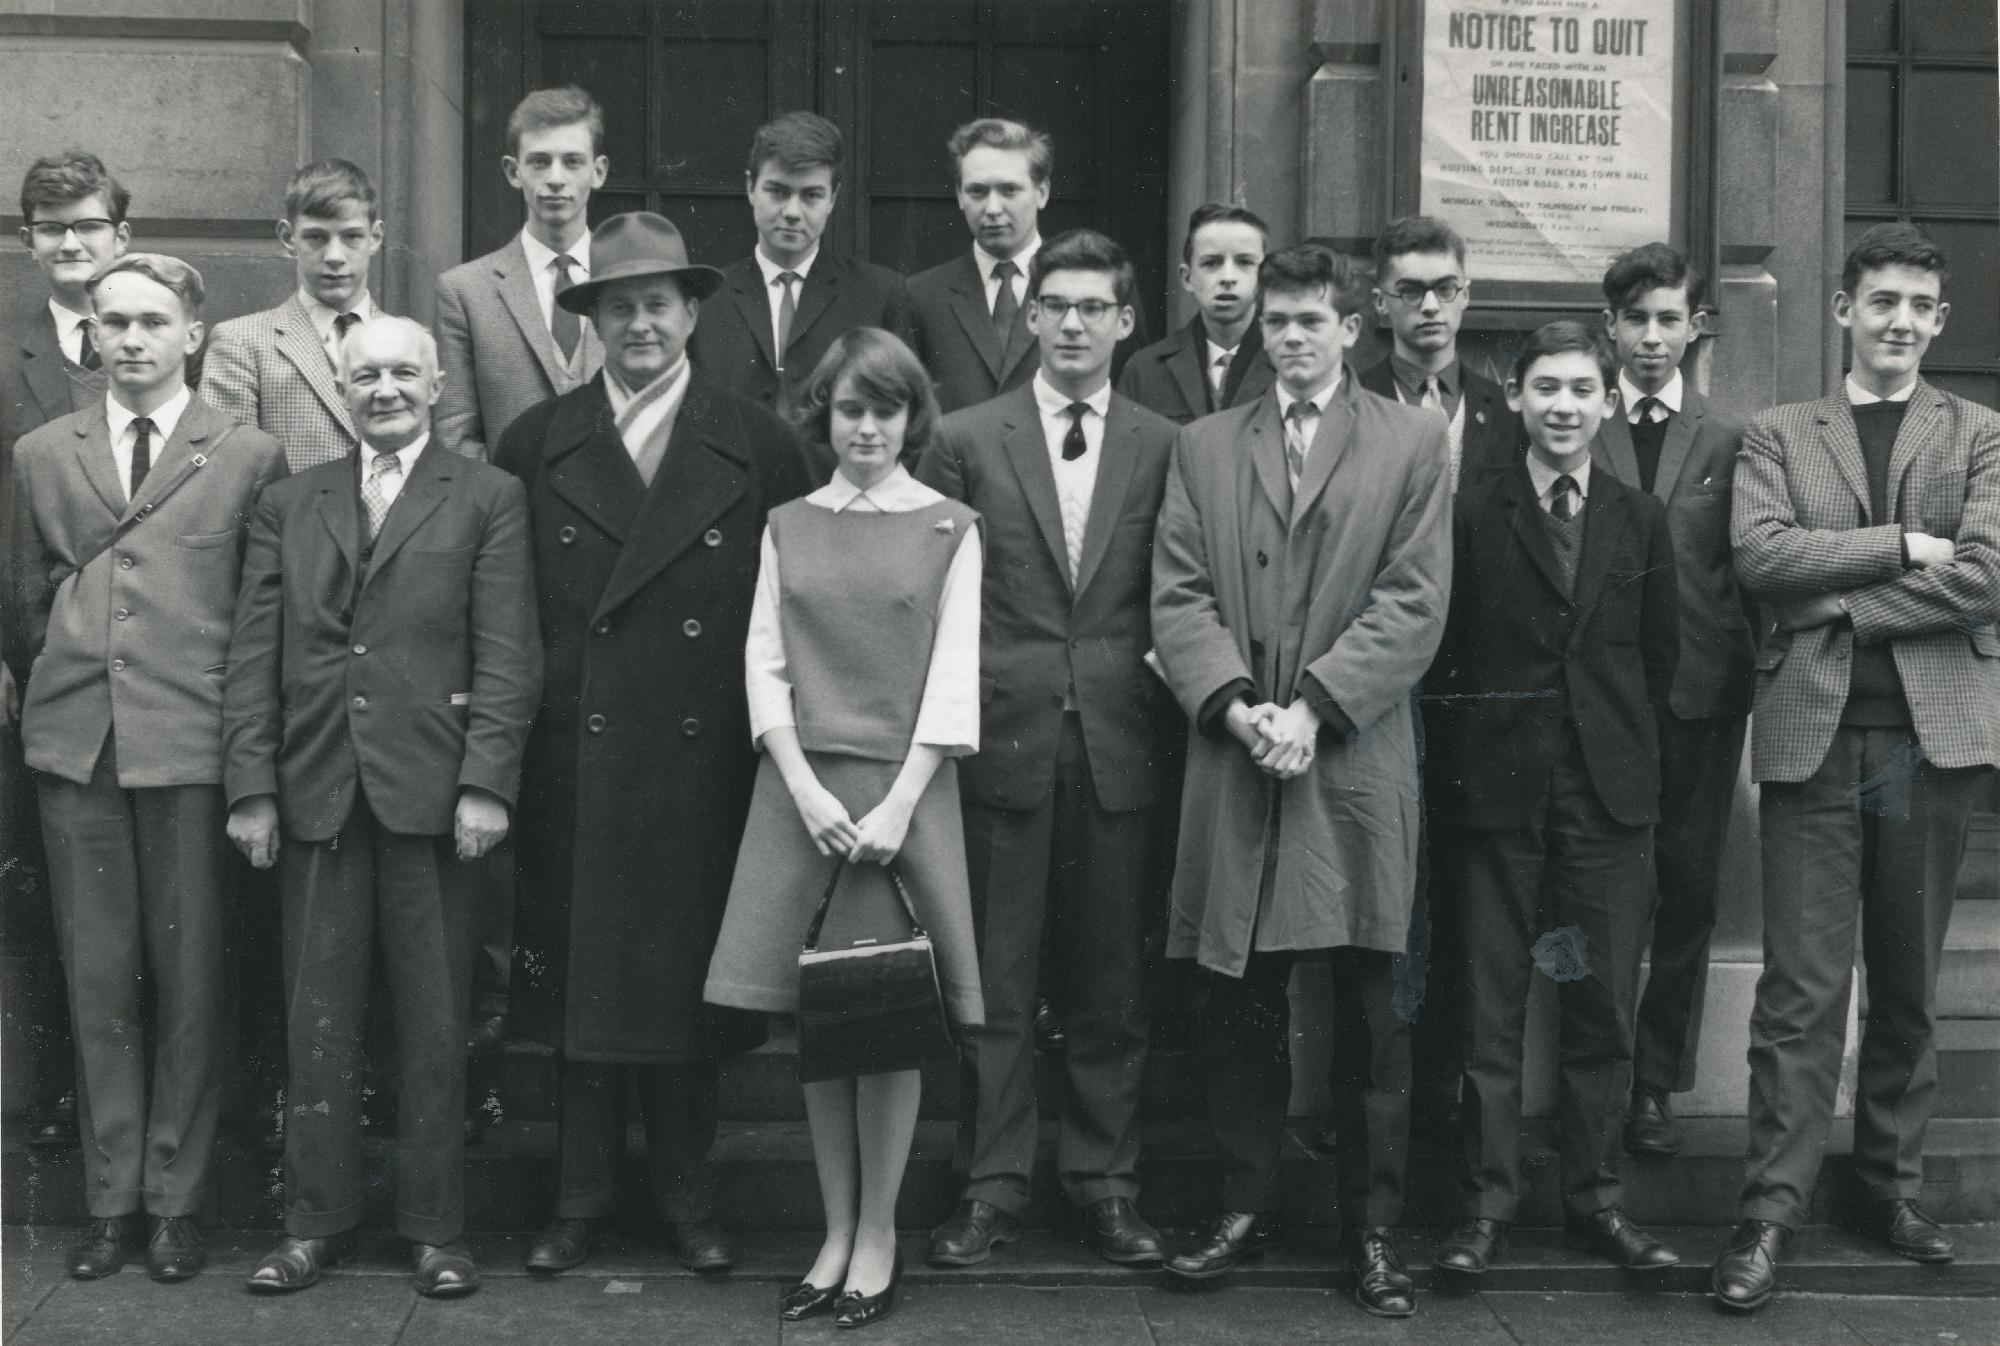 Some of the participants in the Paul Keres display on November 25th, 1962, at St Pancras Town Hall, London WC1. Back row : AJ. Whiteley, D Floyer, PJ Collins, PJ Adams, RC Vaughan, KB Harman, D. Parr, DNL Levy, Front row : MV Lambshire, AE Hopkins (selector) Paul Keres, Miss D. Dobson, RE Hartley, BC Gillman, WR Hartston and PN Lee. Photograph by AM Reilly. Source : BCM, 1963, page 13